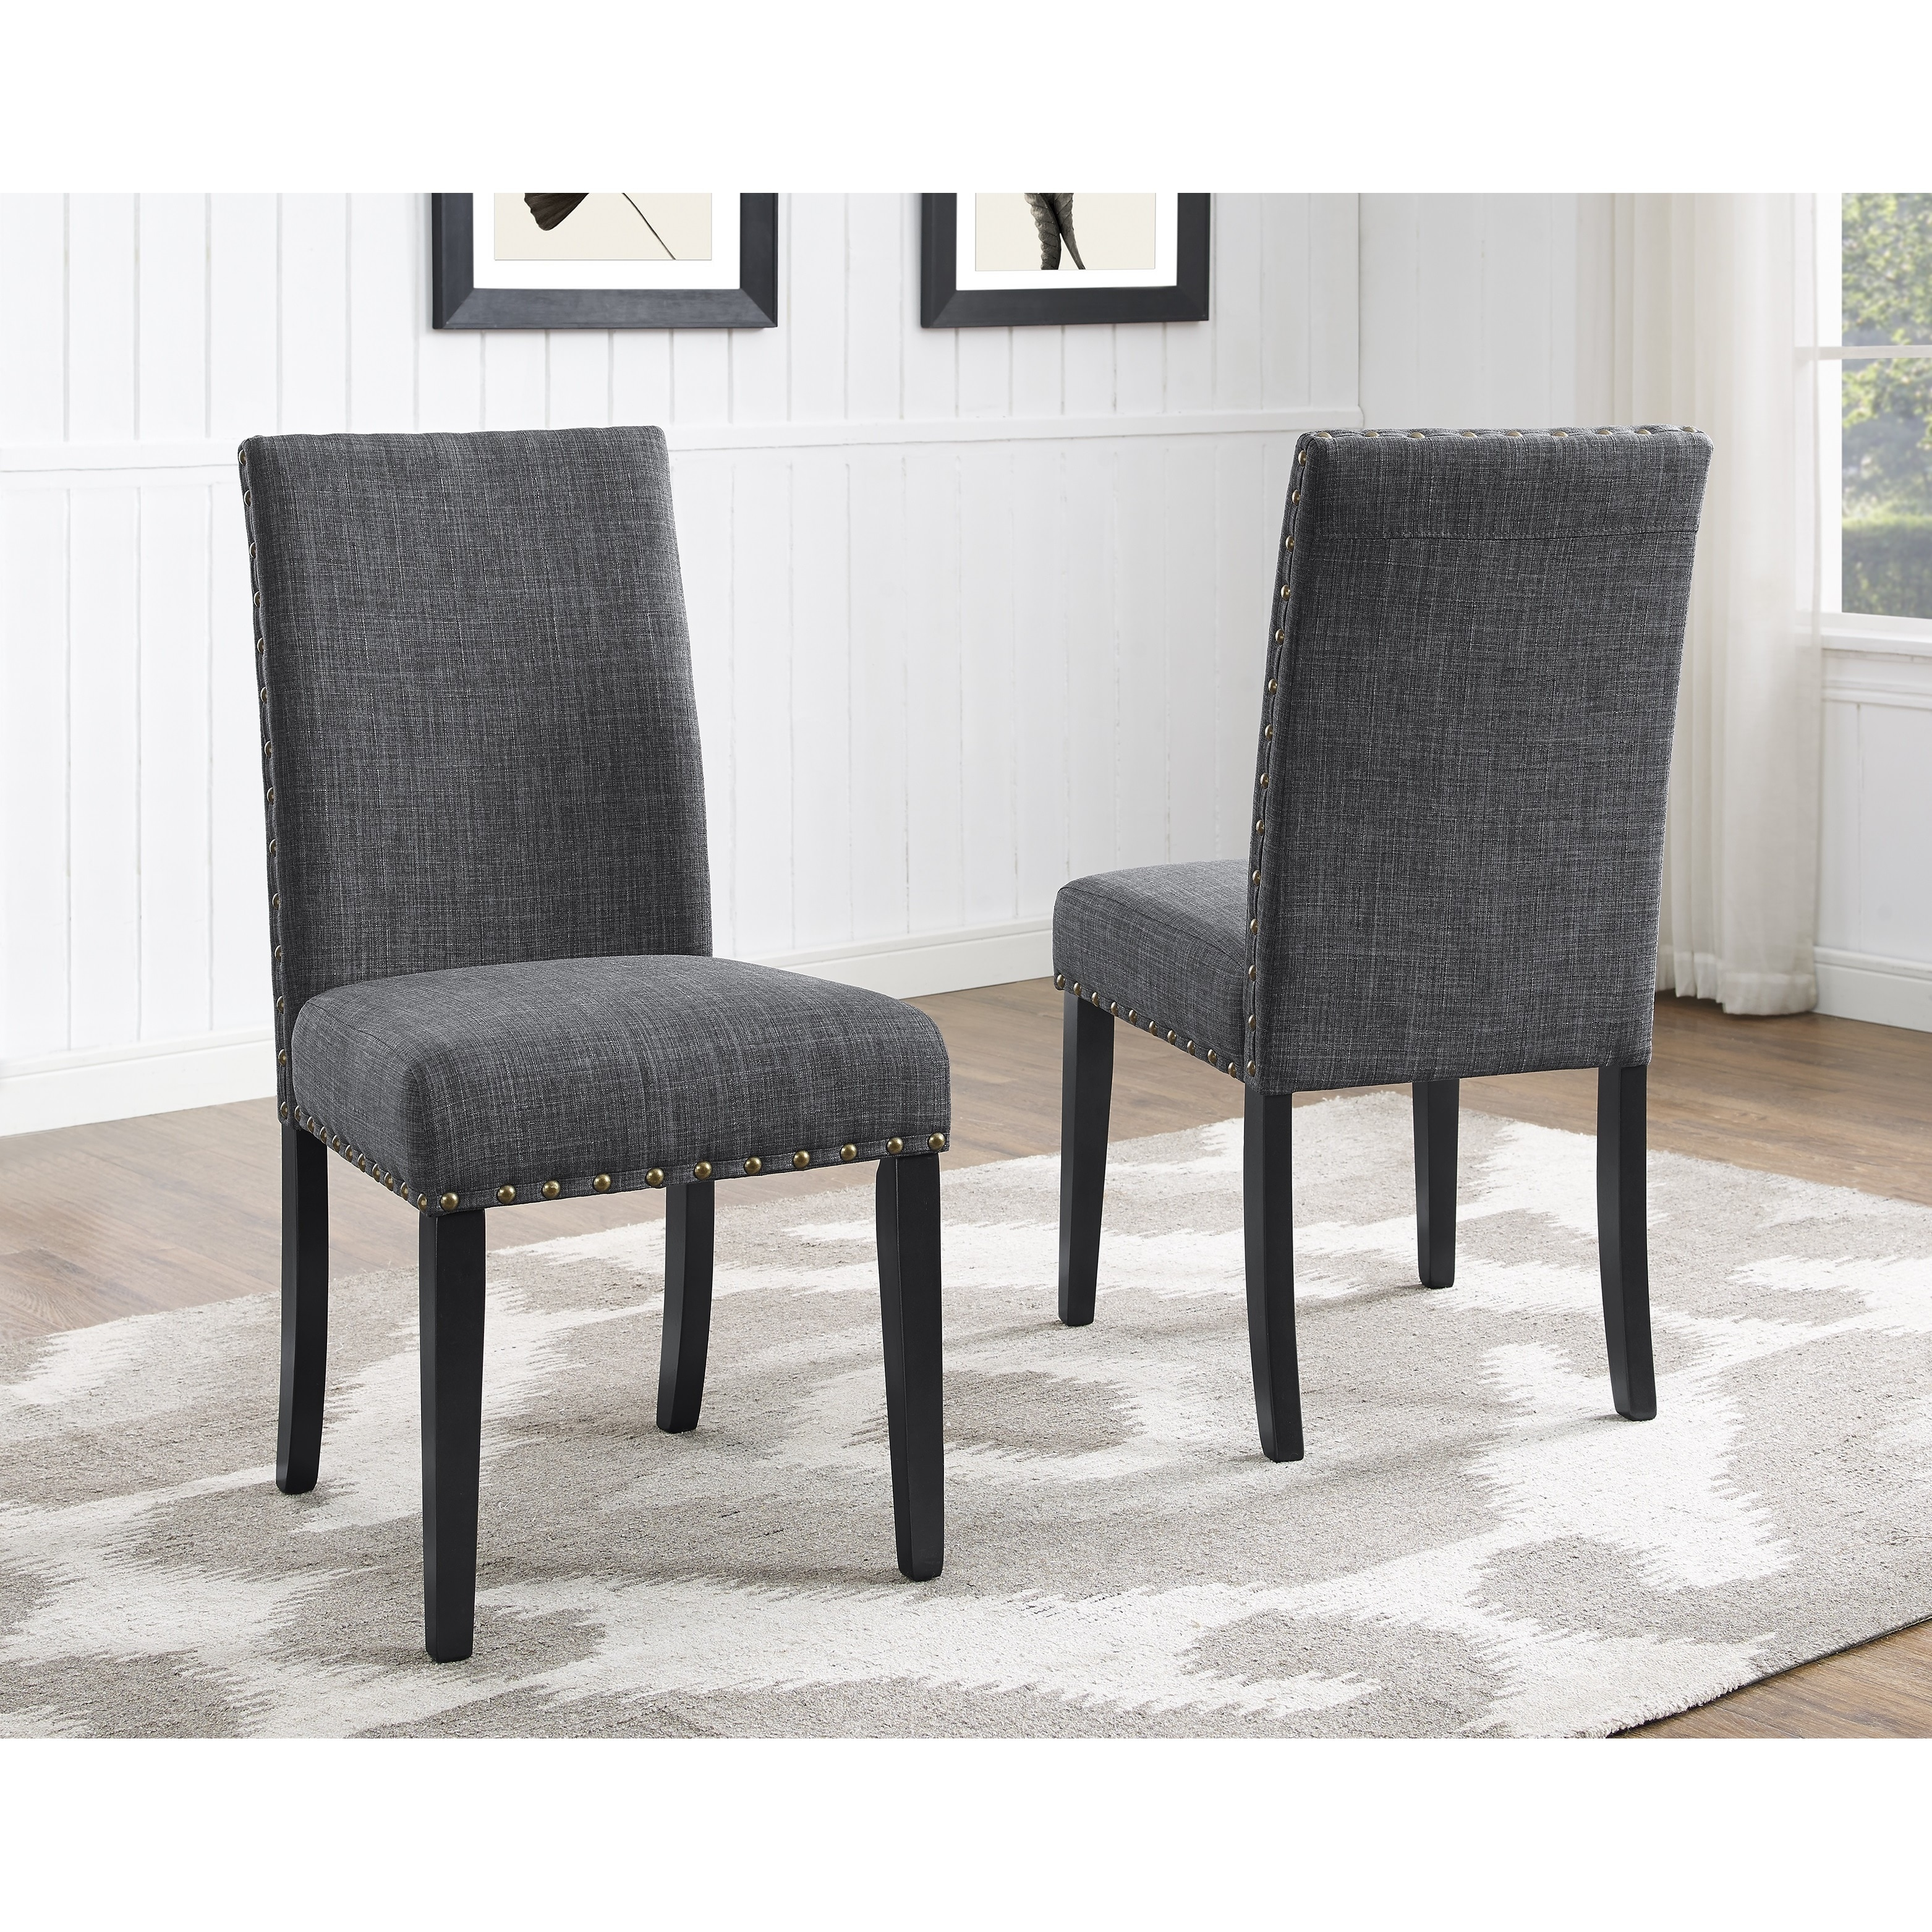 Clay Alder Home Humboldt Nailhead Trim Fabric Dining Chairs (Set Of 2) (